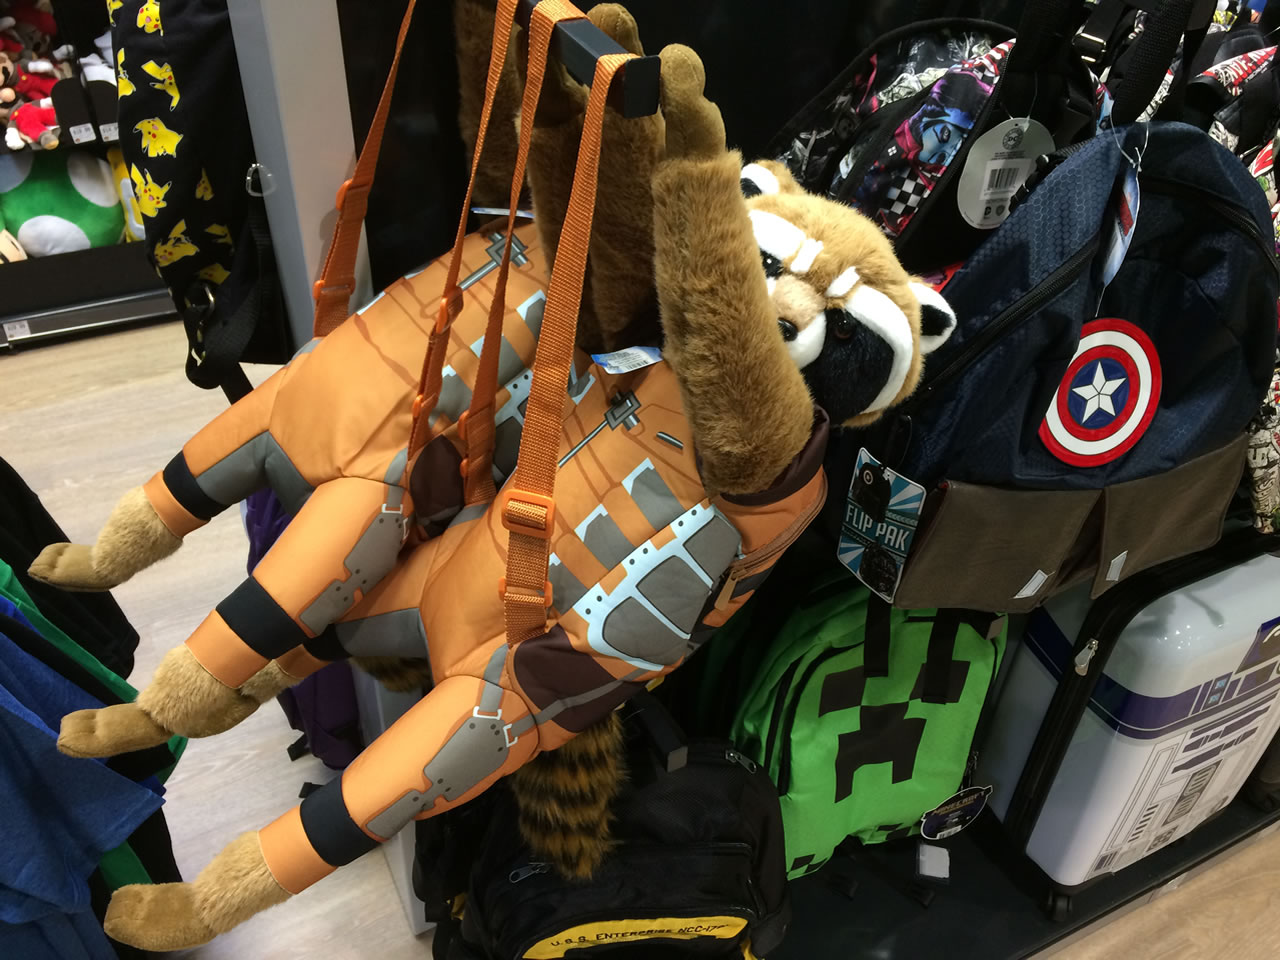 54 thinkgeek store - rocket and captain america bags